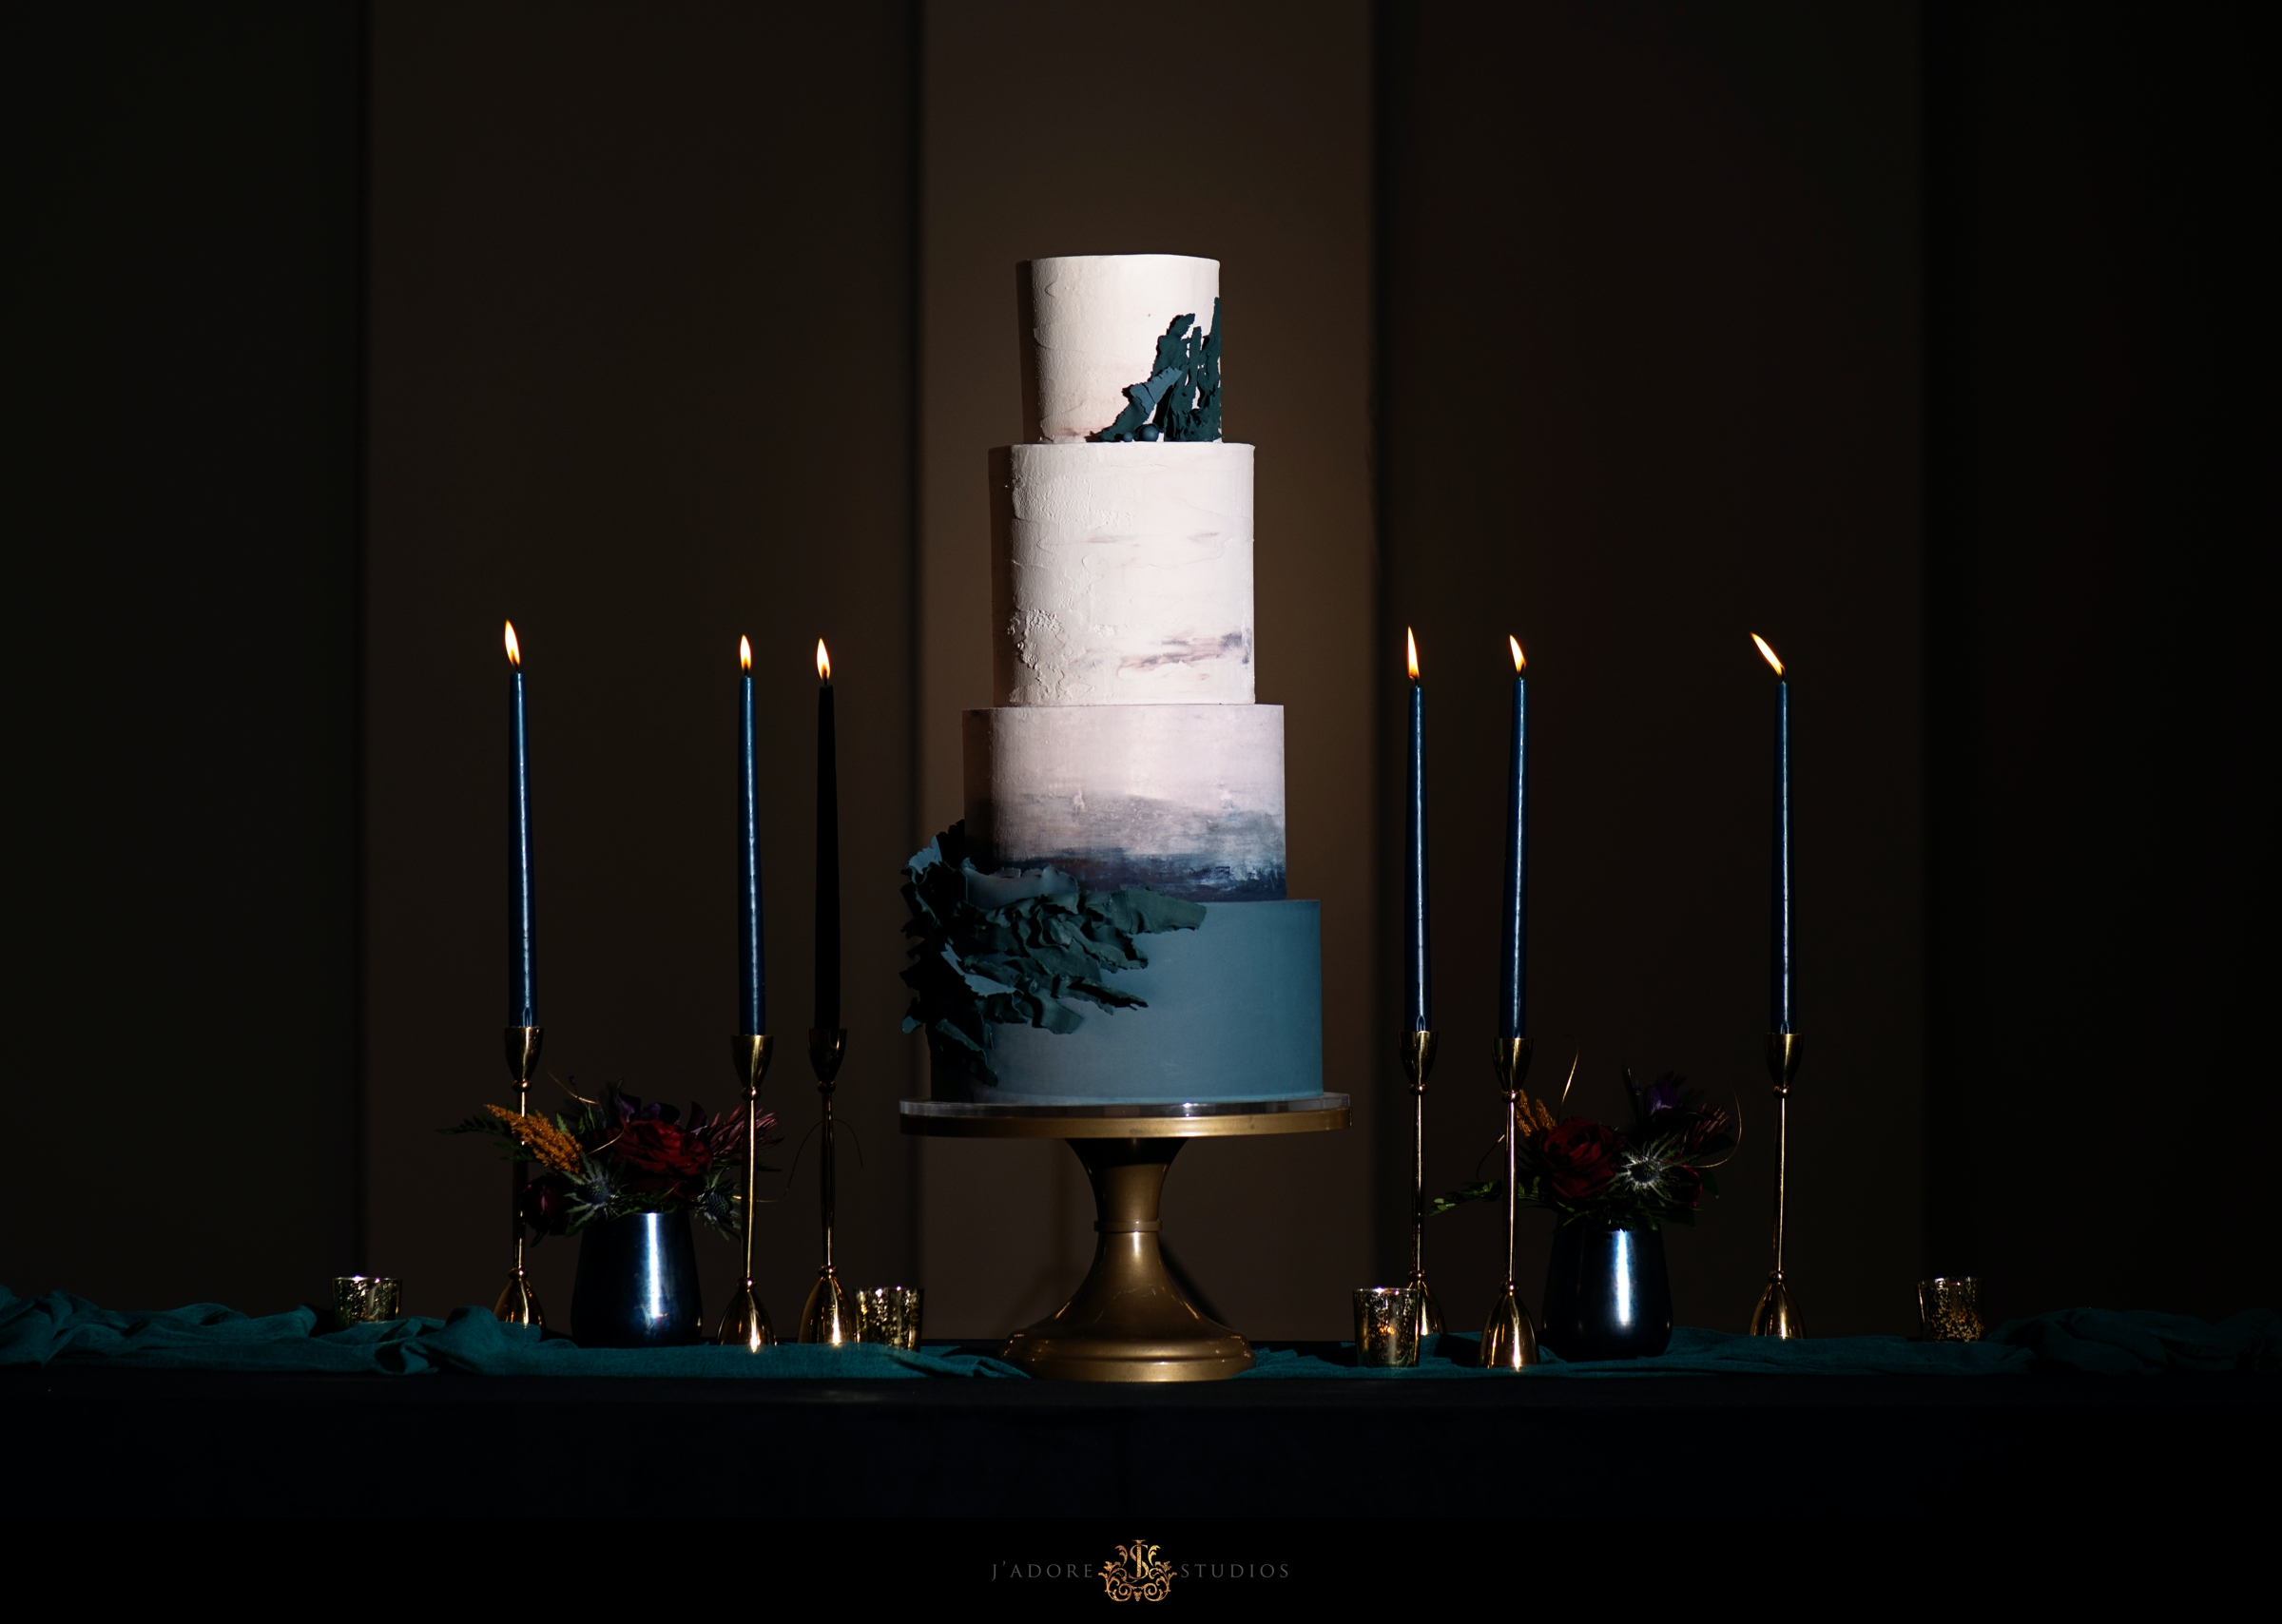 Teal and white cake with black candles at the Clay Theatre in Jacksonville Florida